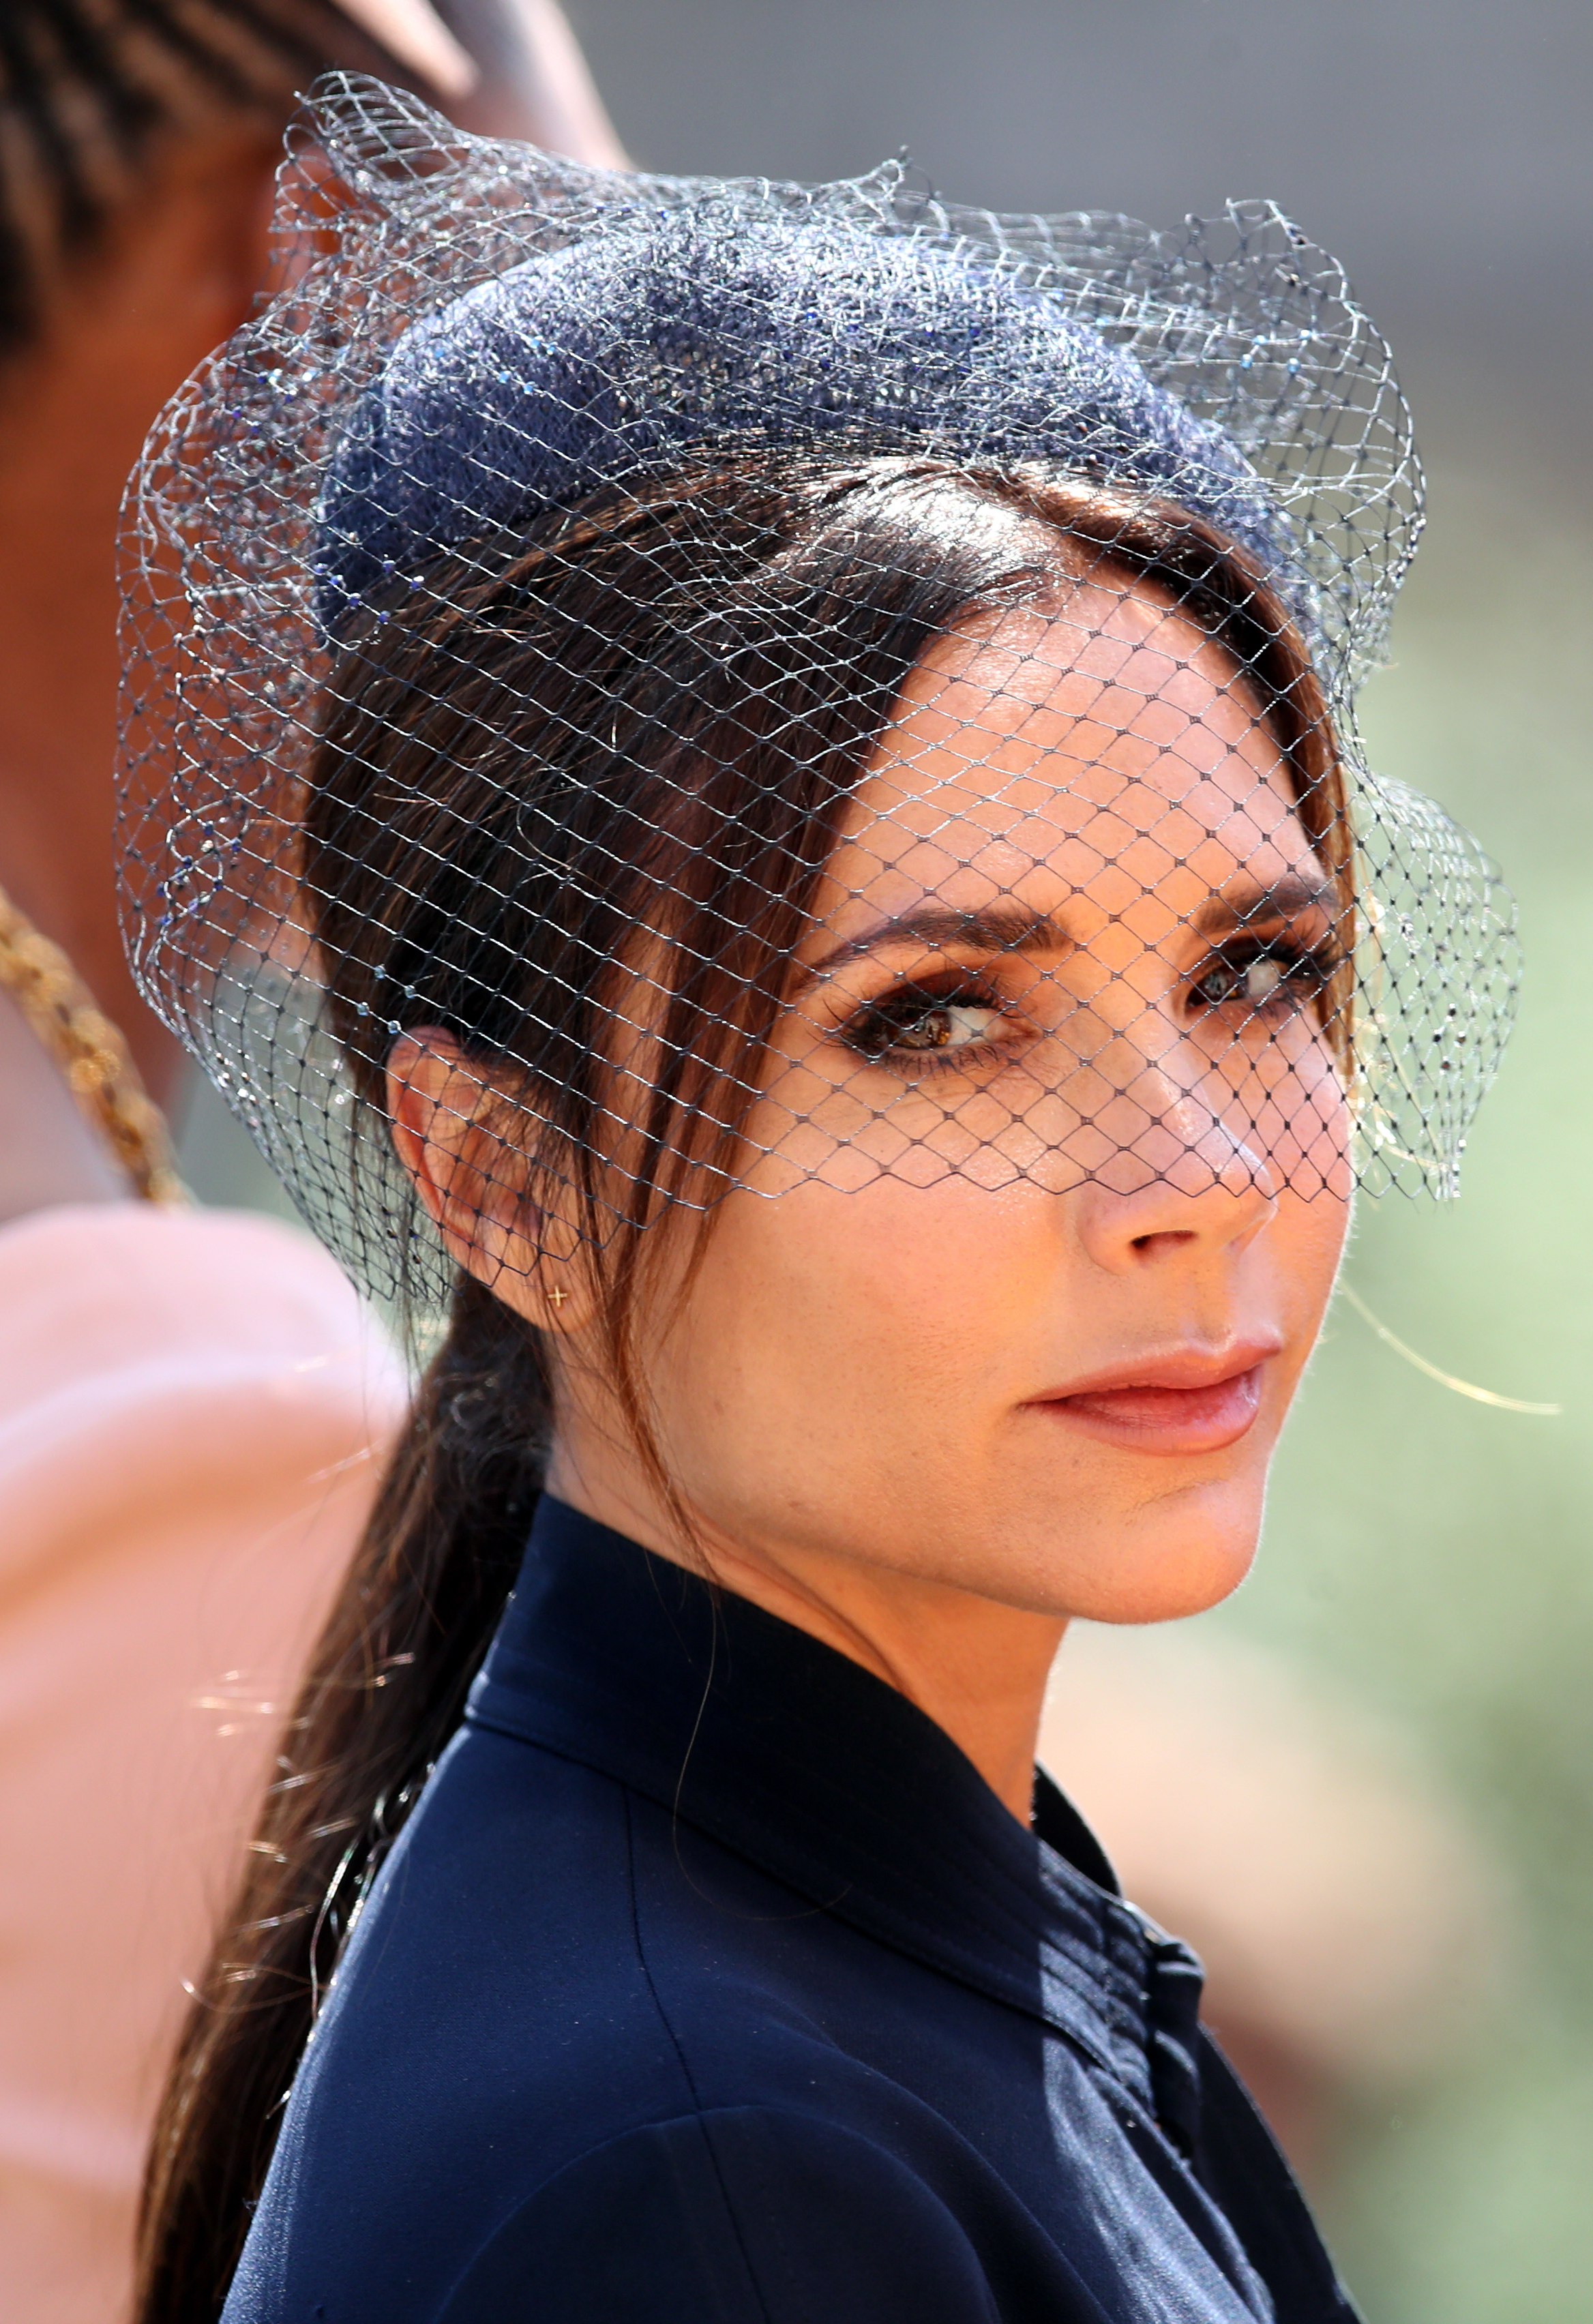 Victoria Beckham leaves St George's Chapel at Windsor Castle after the wedding of Meghan Markle and Prince Harry.